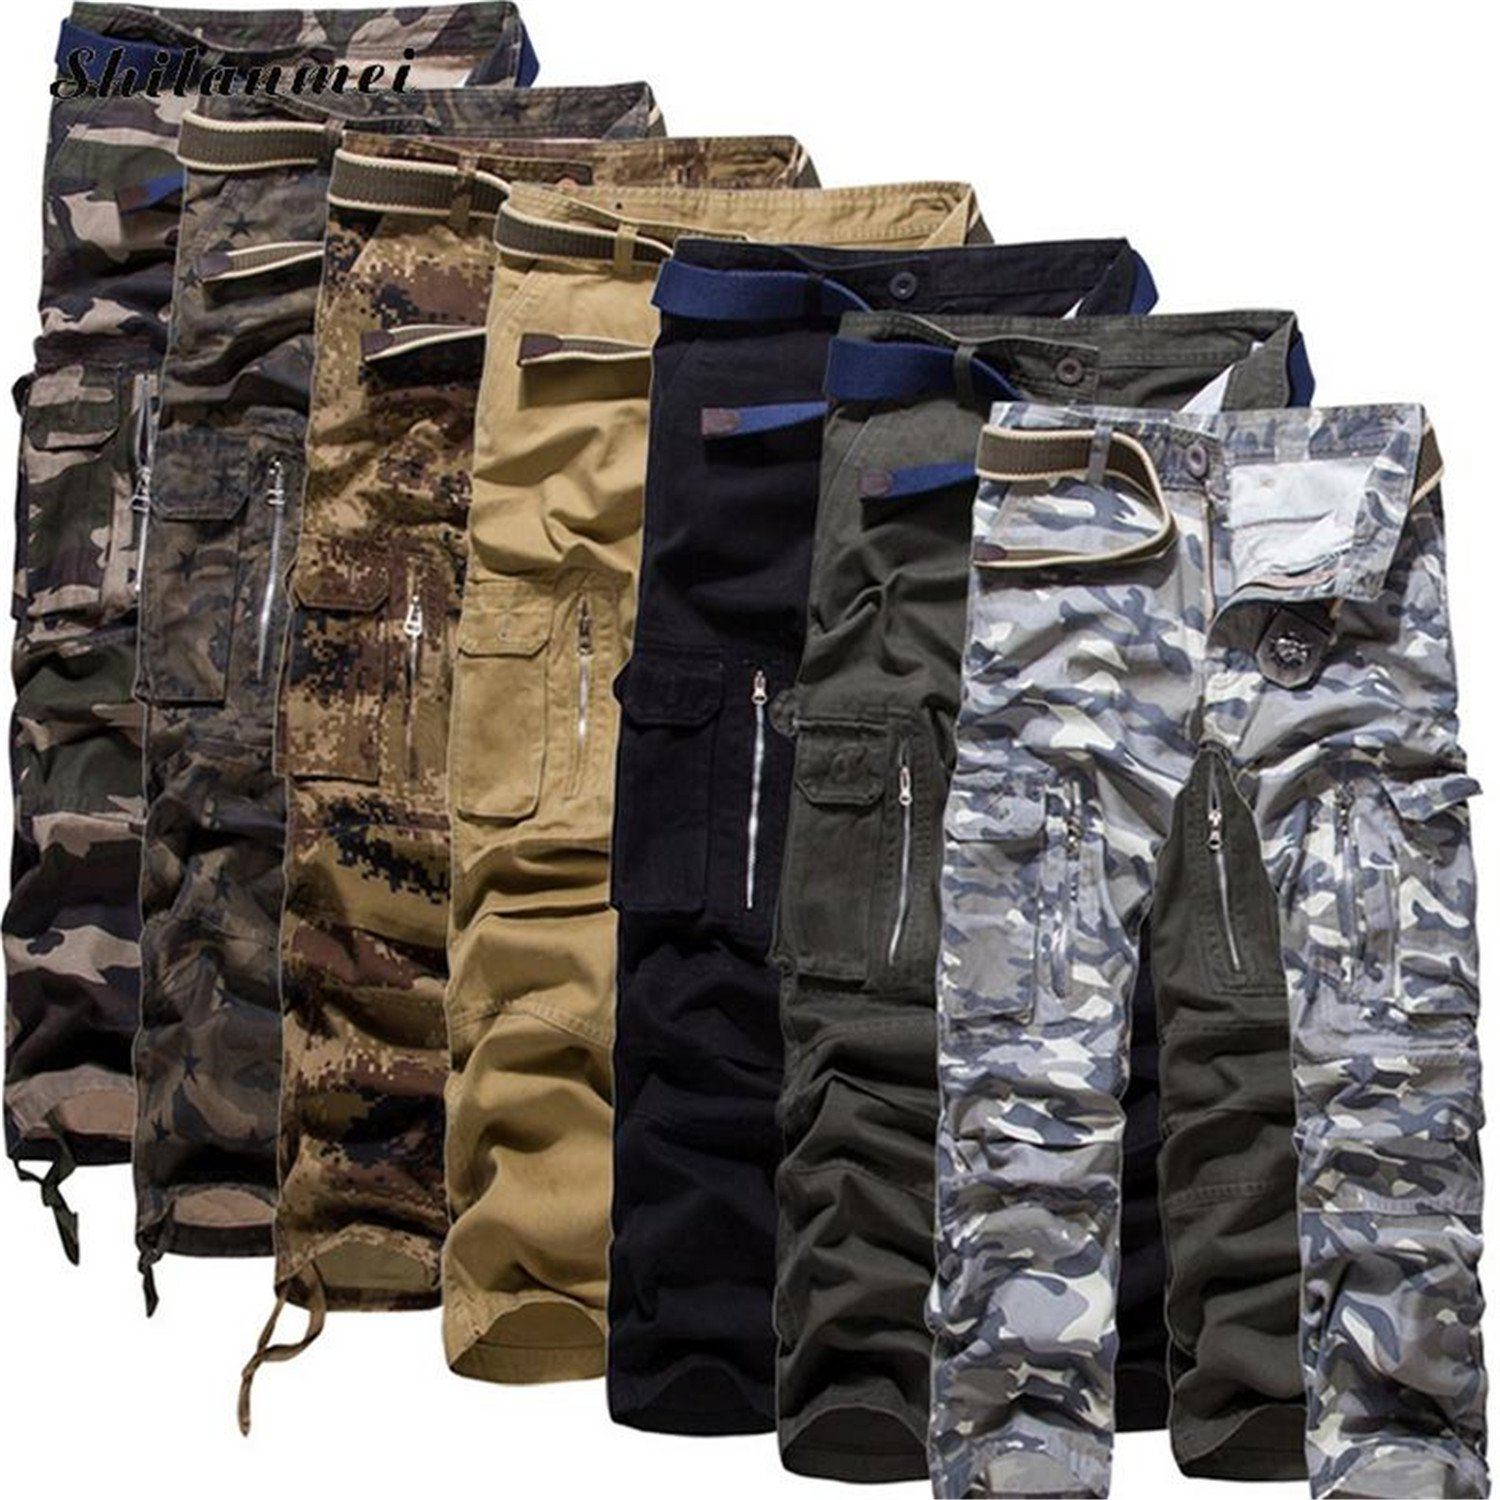 Richard Nguyen Men Jeans Mens Jeans With Side Pockets New Cotton Middle Waist Men Casual Pant Camouflage Jean Pants